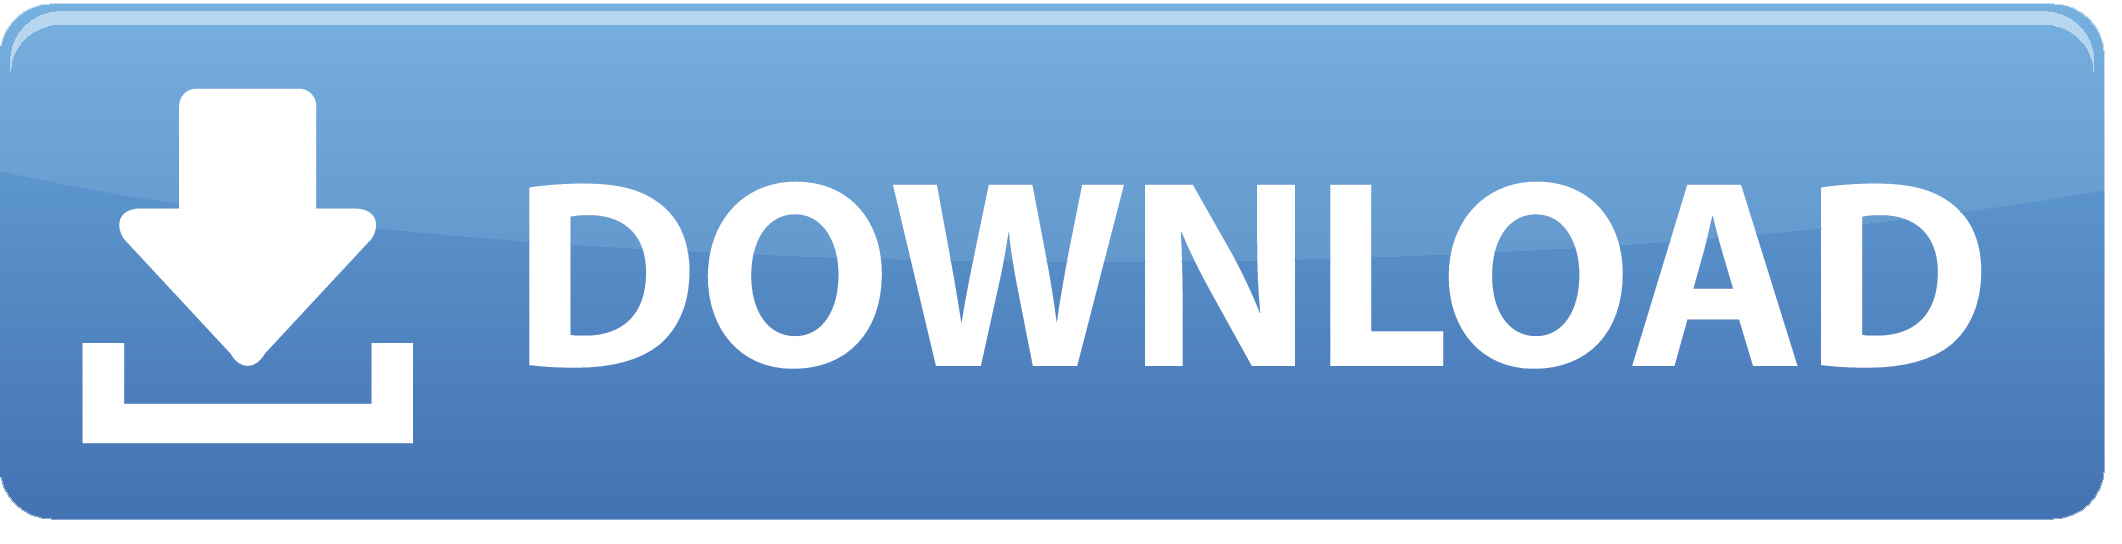 Download Now Button Blue PNG - آپدیت کانکشن هوشمند